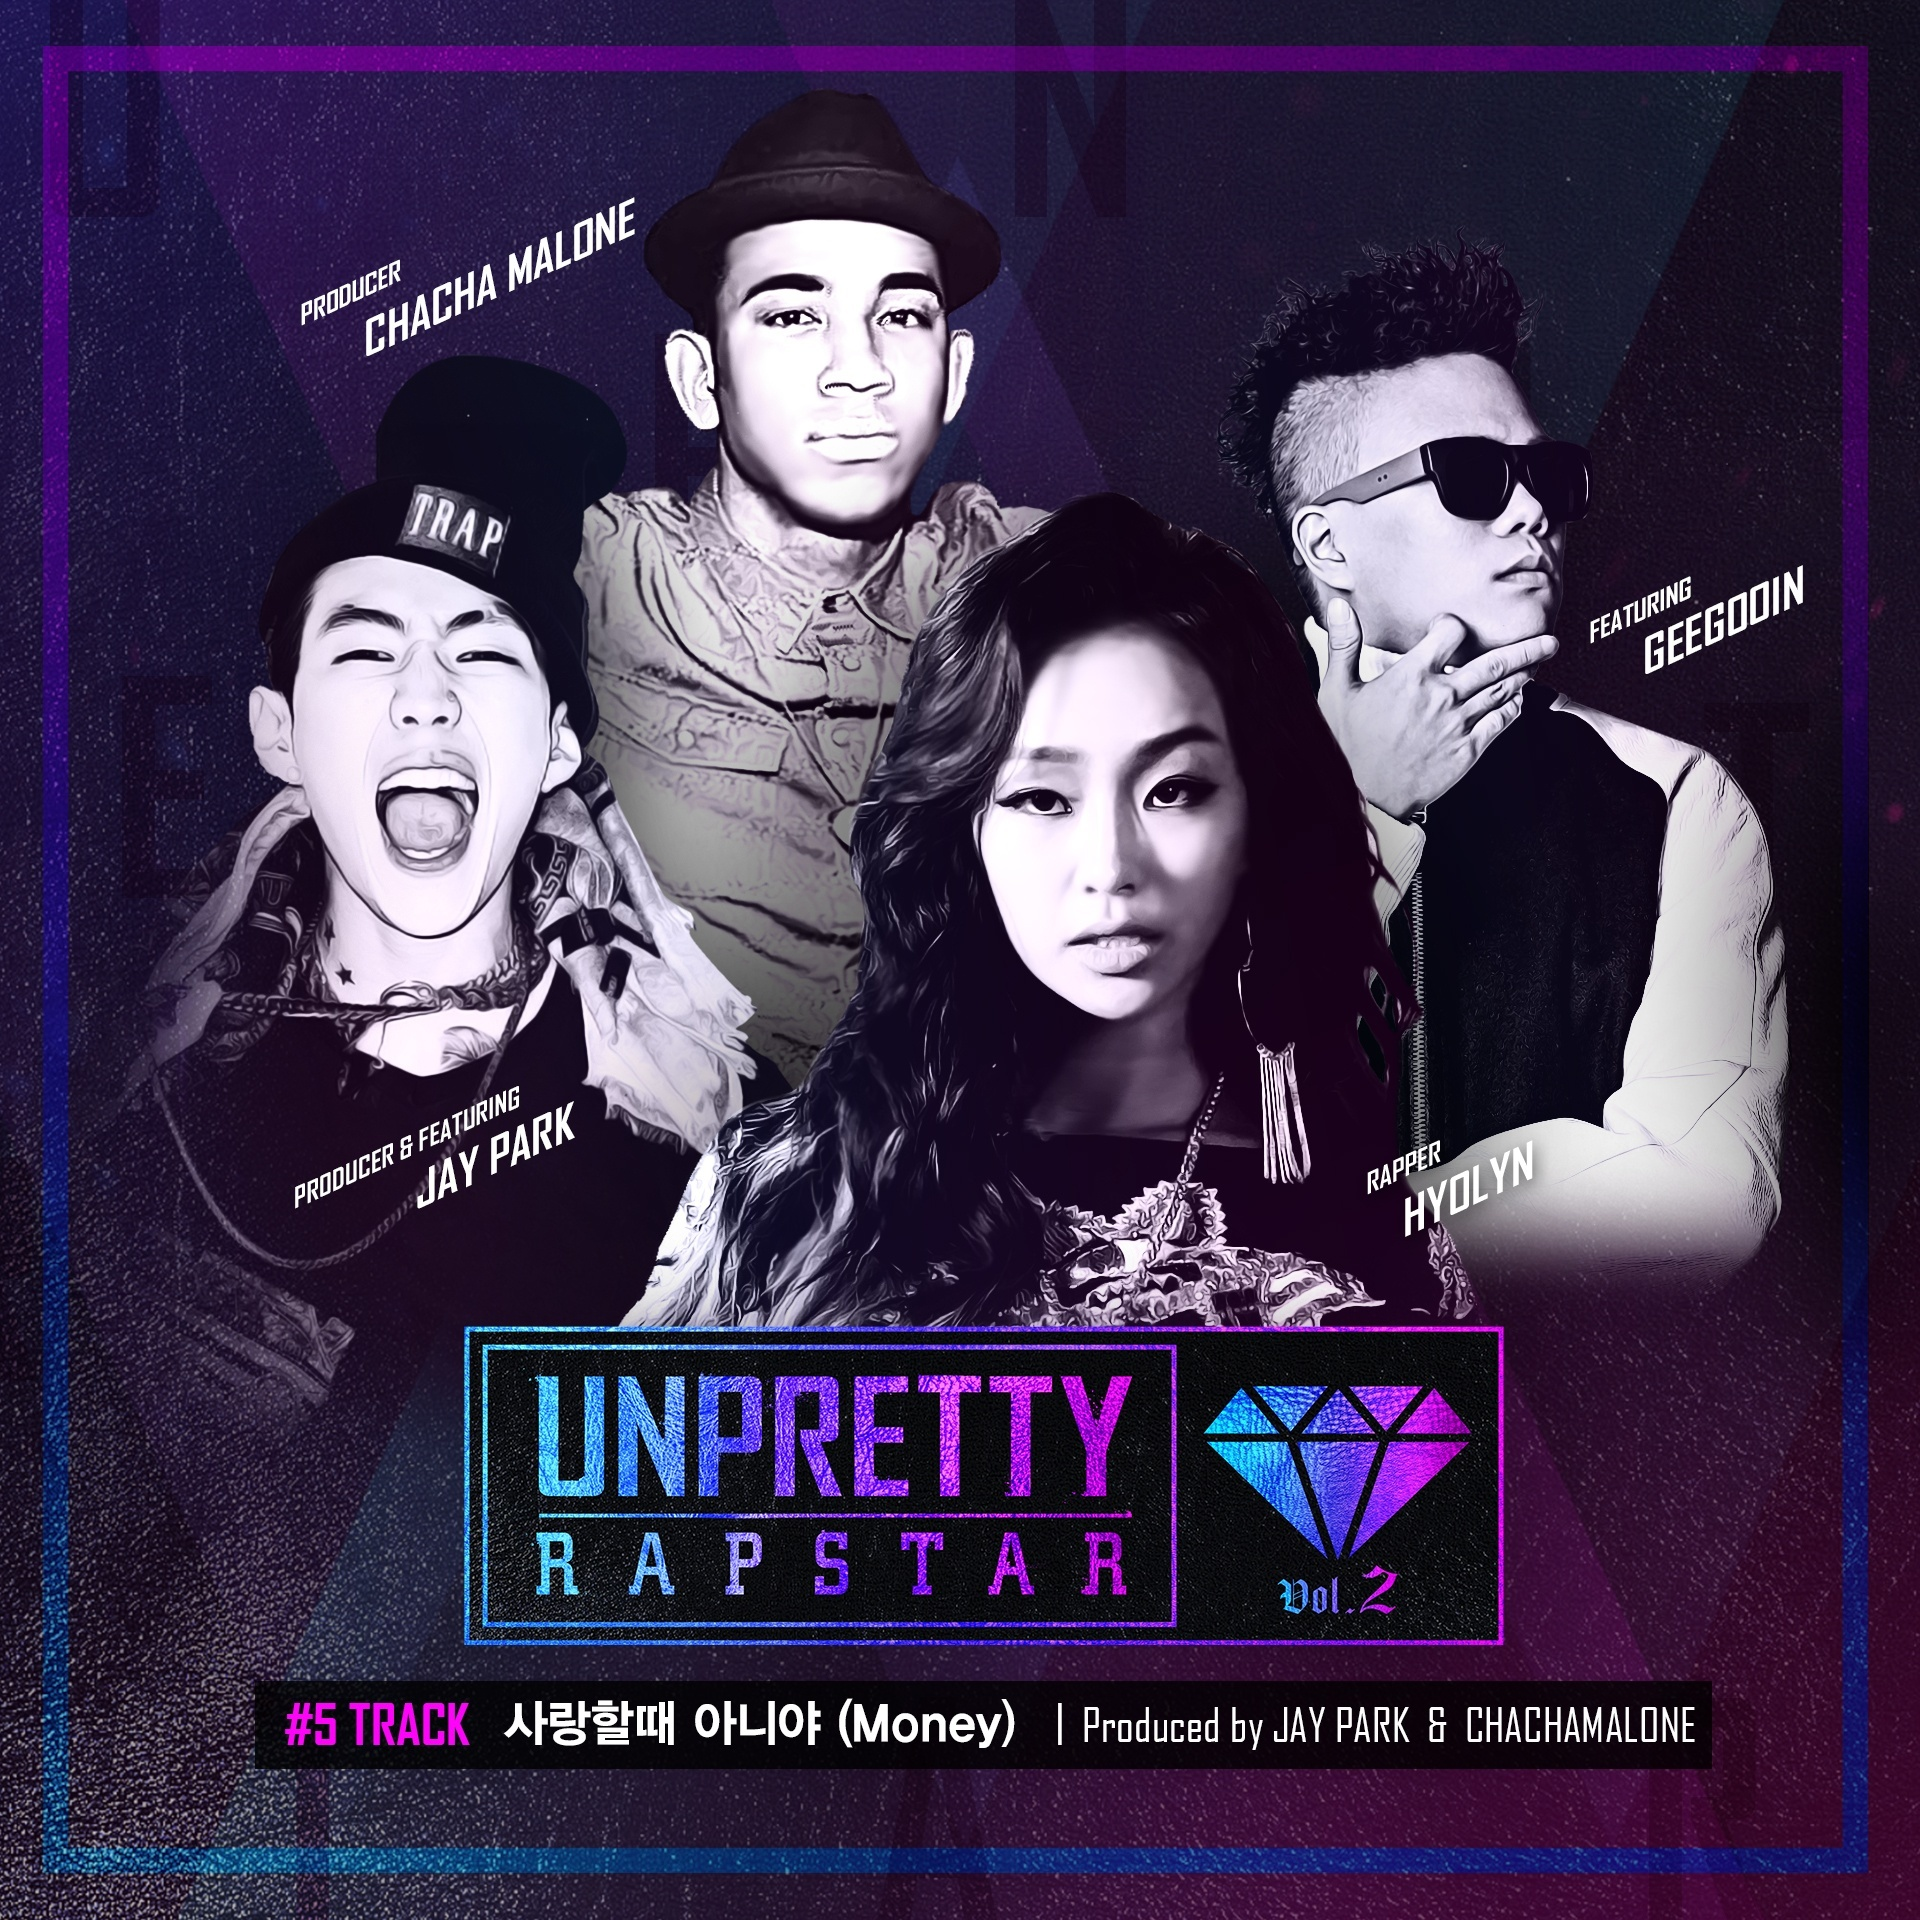 Hyorin (Sistar) – Unpretty Rapstar 2 Track 5 – Money Feat. Jay Park & Geegooin K2Ost free mp3 download korean song kpop kdrama ost lyric 320 kbps